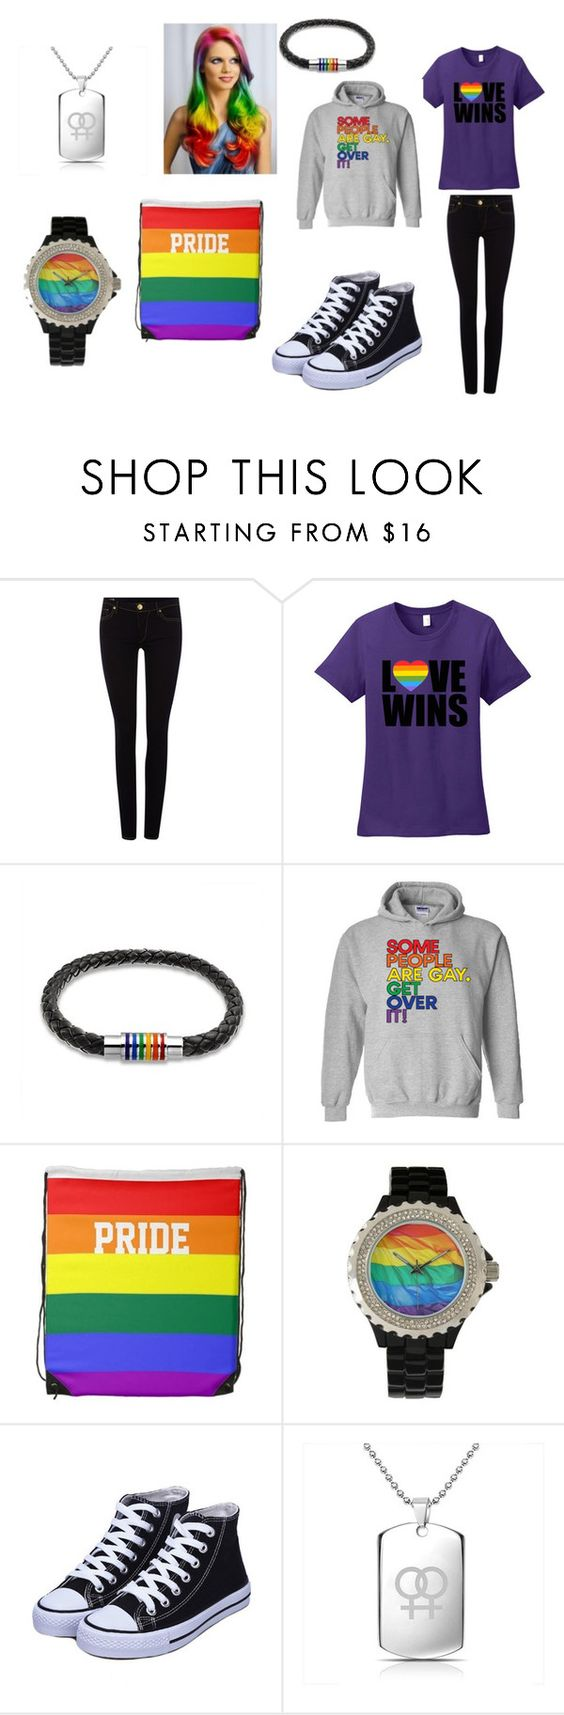 """""""MY BI PRIDE IS REAL RIGHT NOW"""" by momo-diomands on Polyvore featuring True Religion, Bling Jewelry, women's clothing, women, female, woman, misses and juniors"""